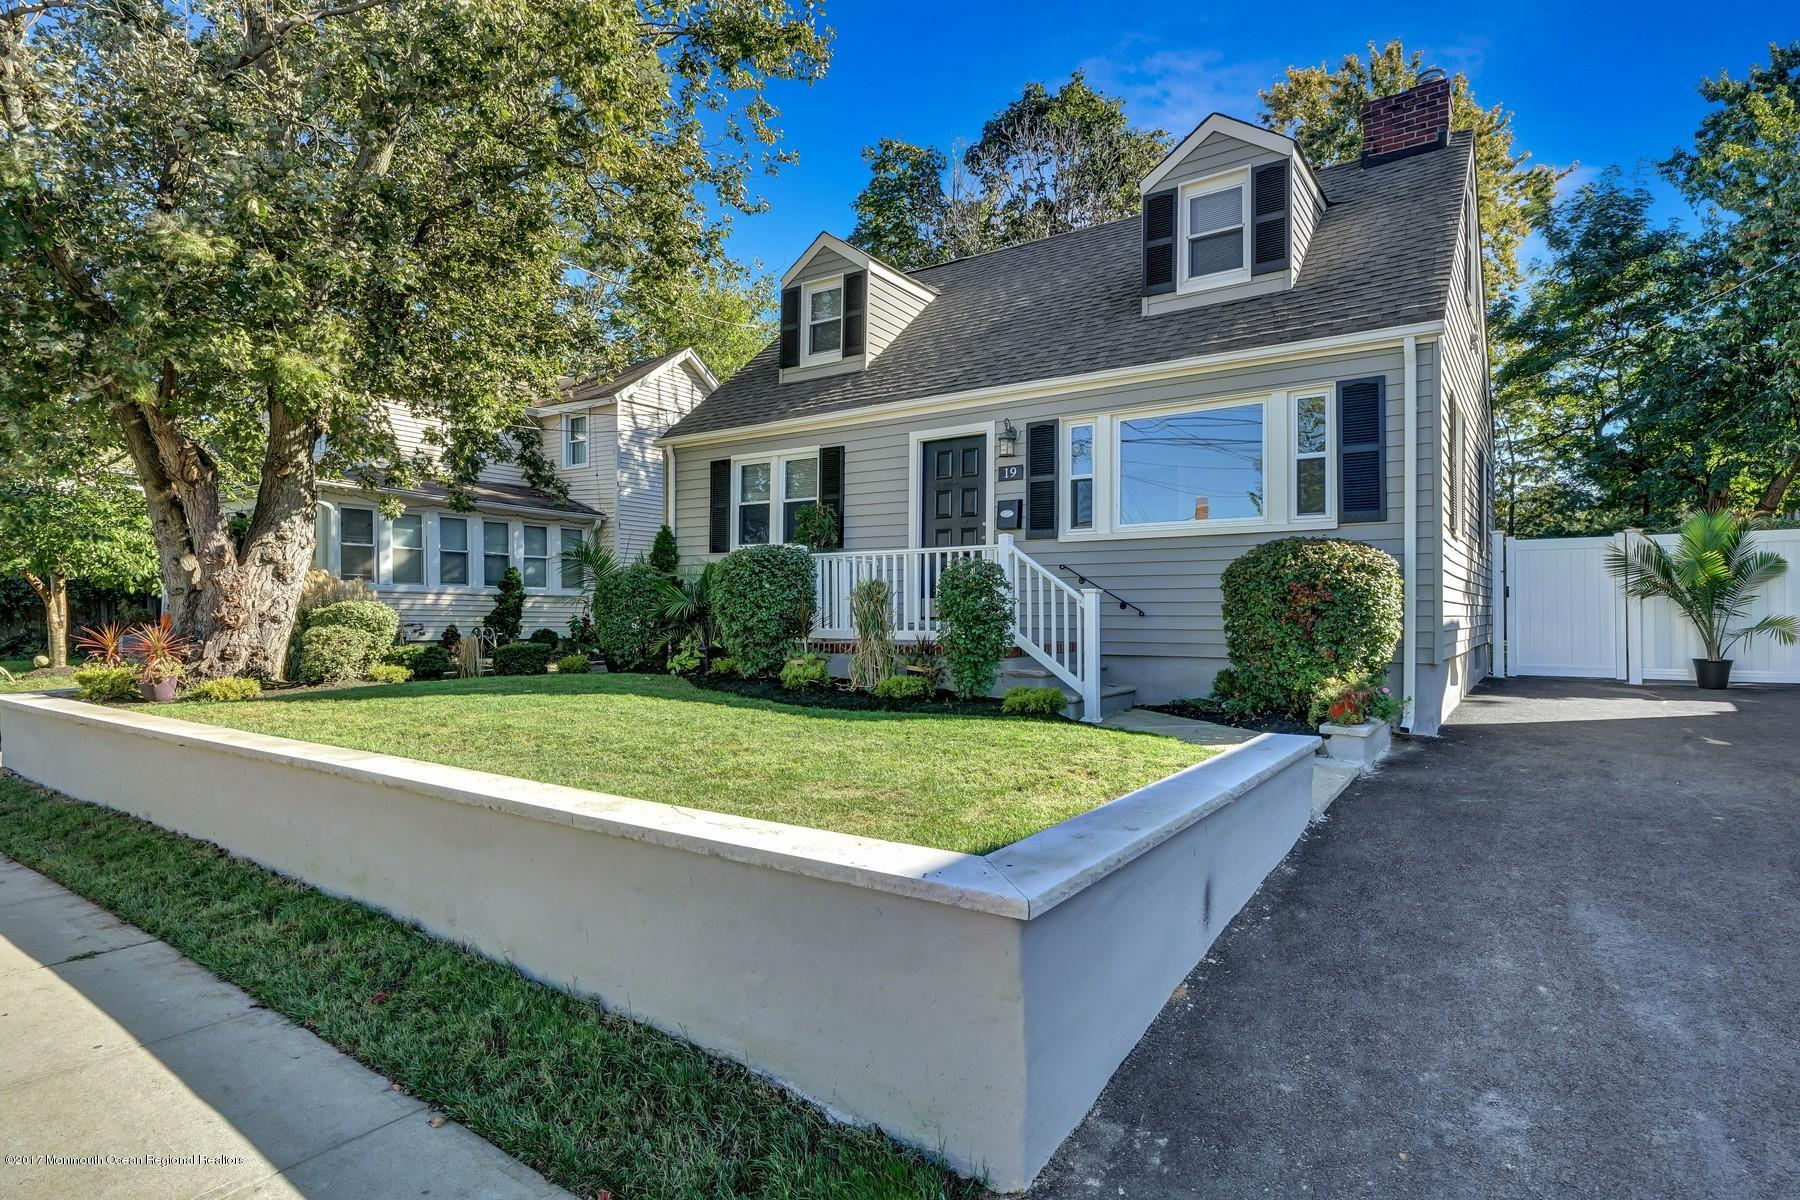 19 CEDAR STREET, RED BANK, NJ 07701